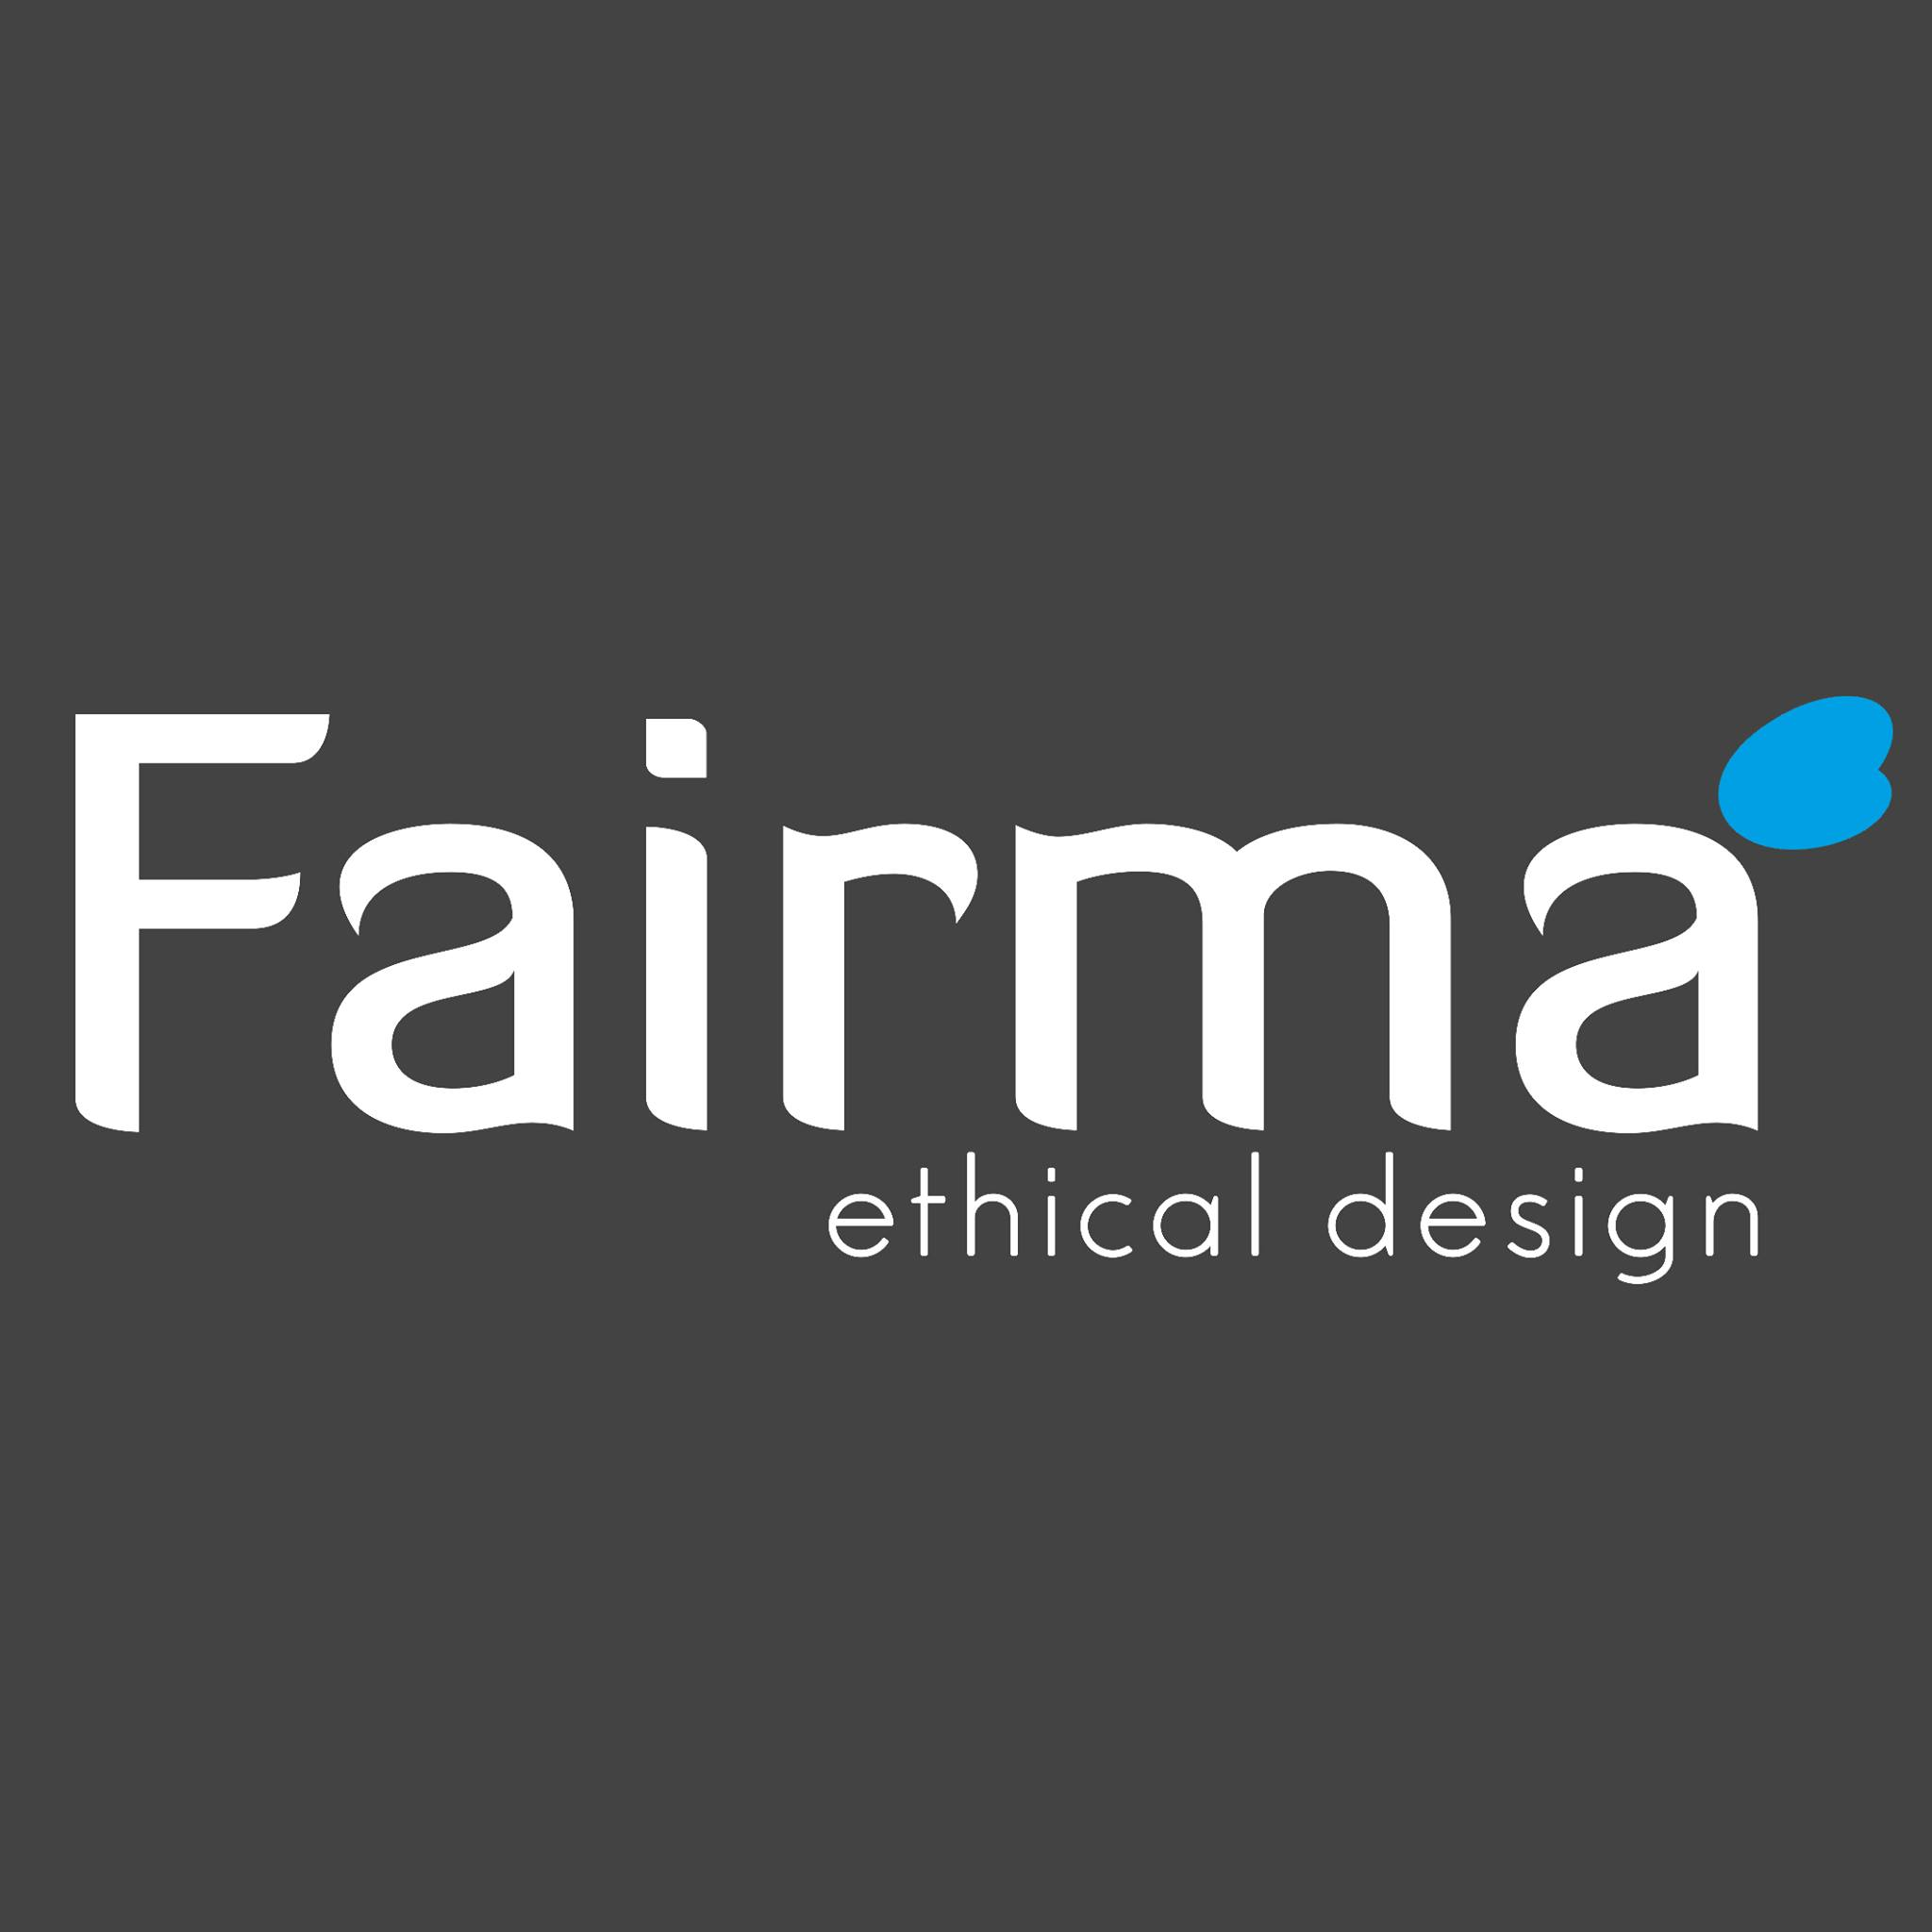 Fairma ethical design logo